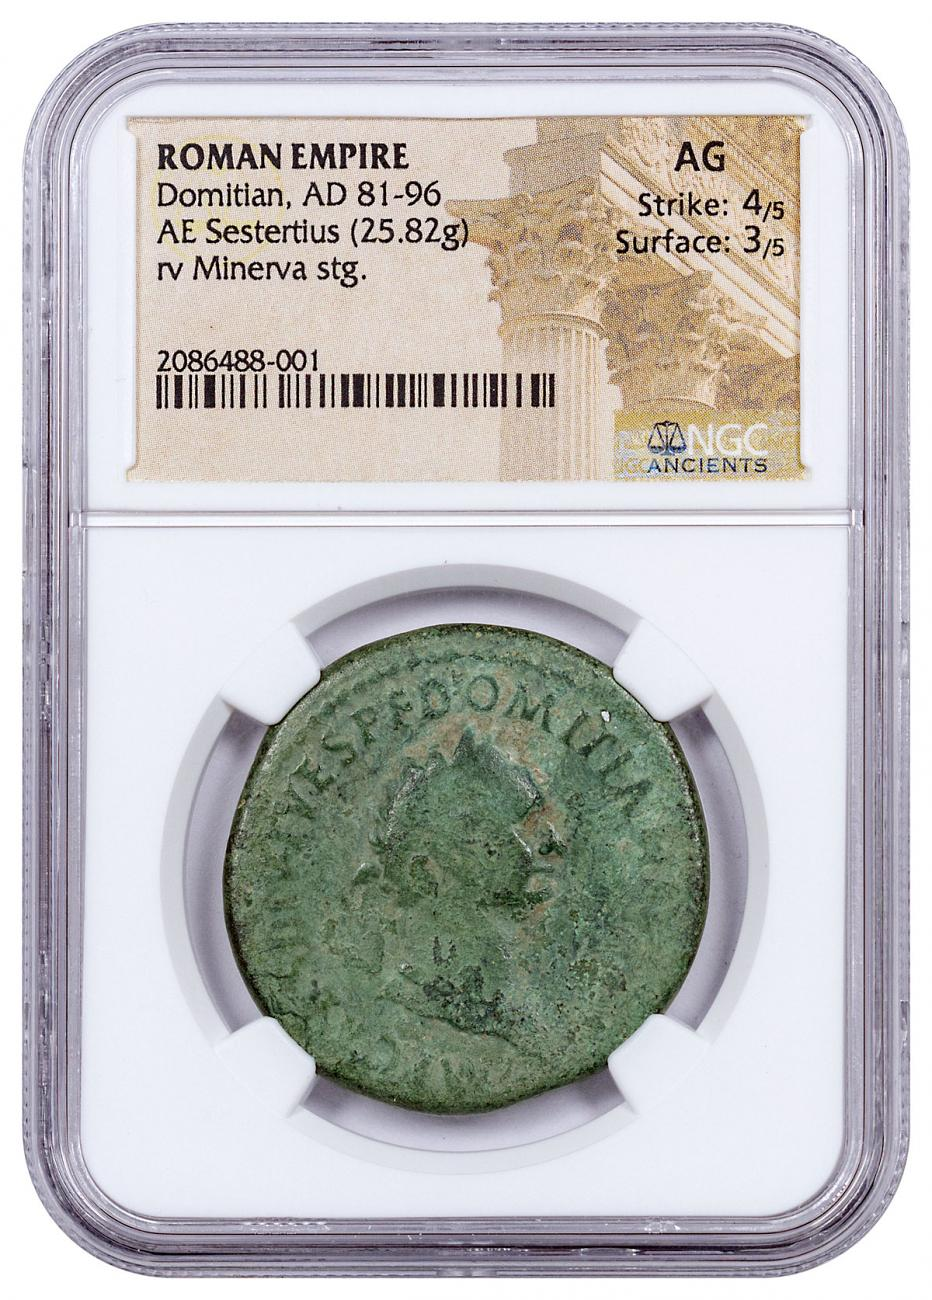 Roman Empire, Domitian (AD 81-96) AE Sestertius – NGC AG (Strike: 4/5, Surface: 3/5)